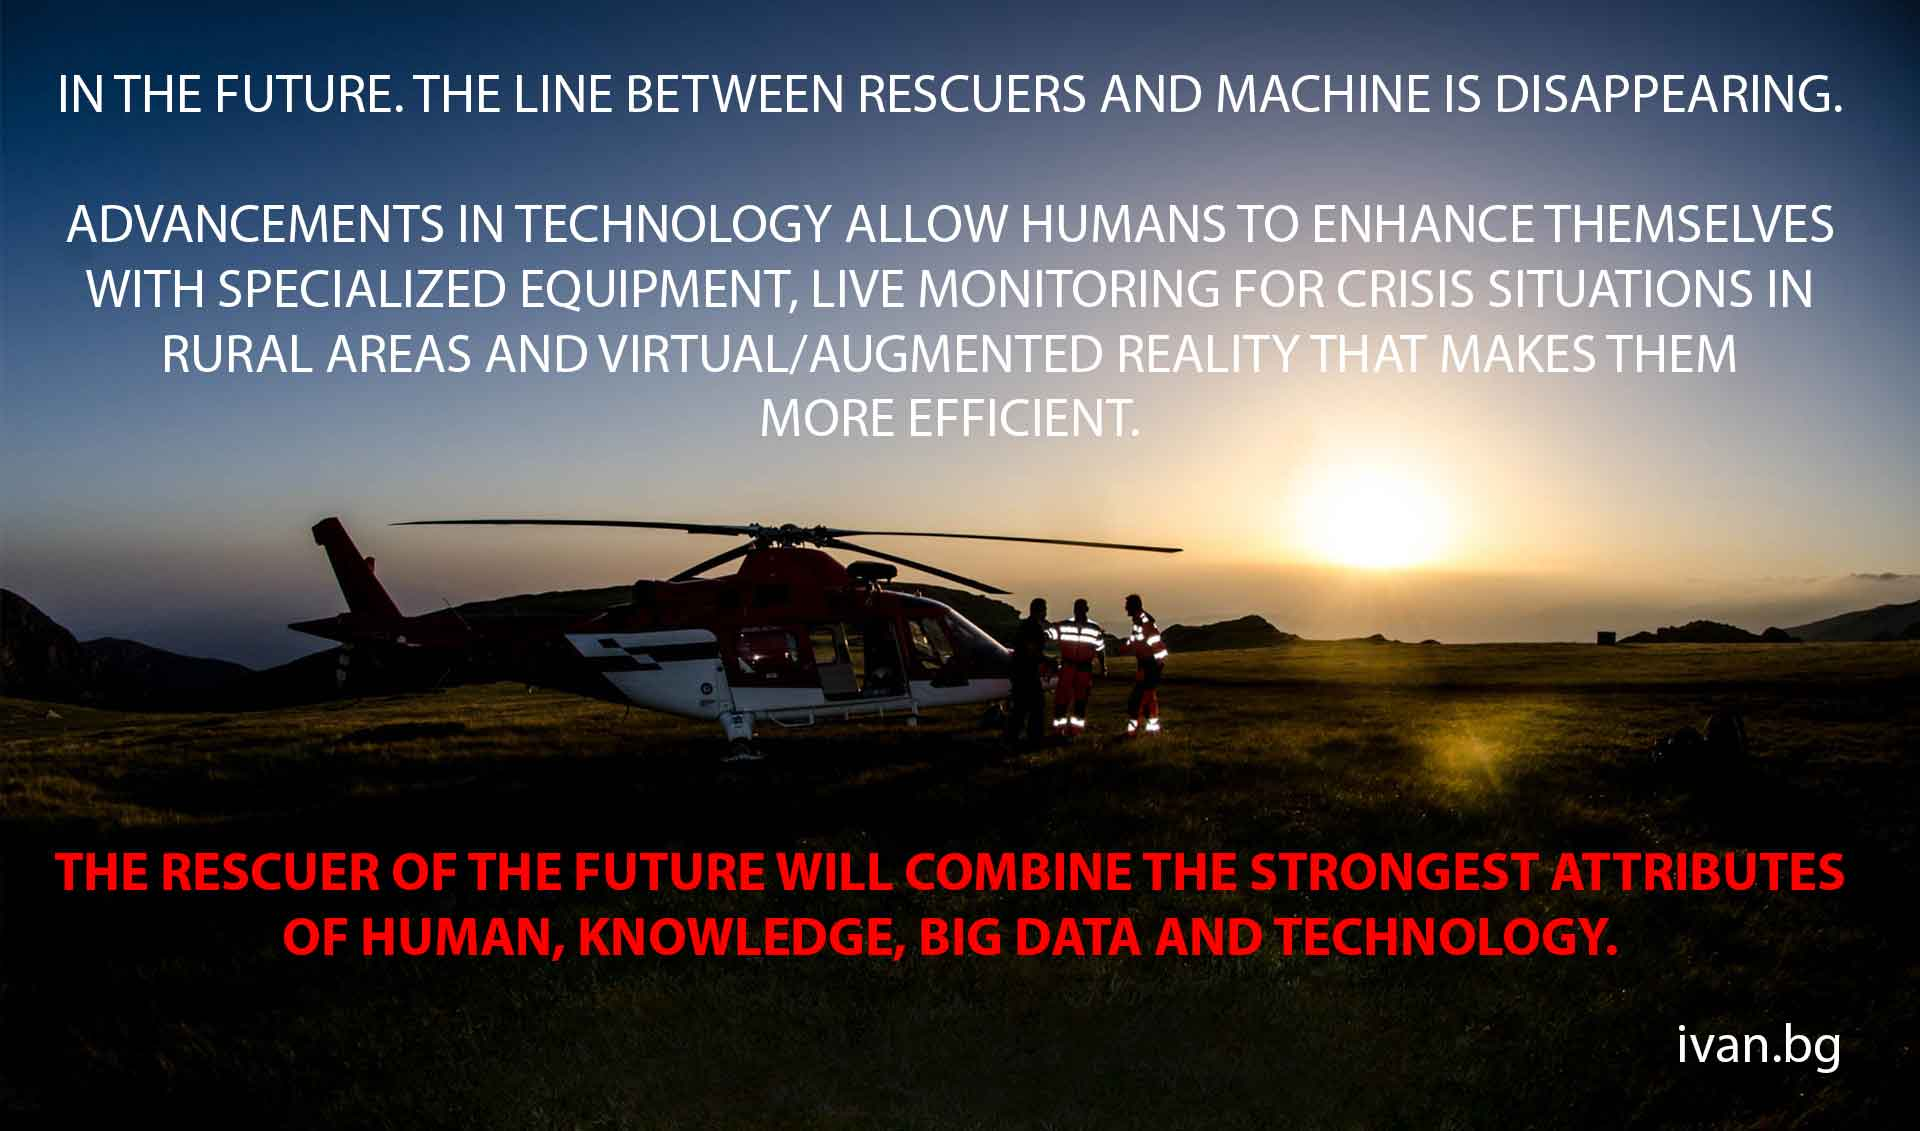 THE RESCUER OF THE FUTURE WILL COMBINE THE STRONGEST ATTRIBUTES OF HUMAN, KNOWLEDGE, BIG DATA AND TECHNOLOGY.